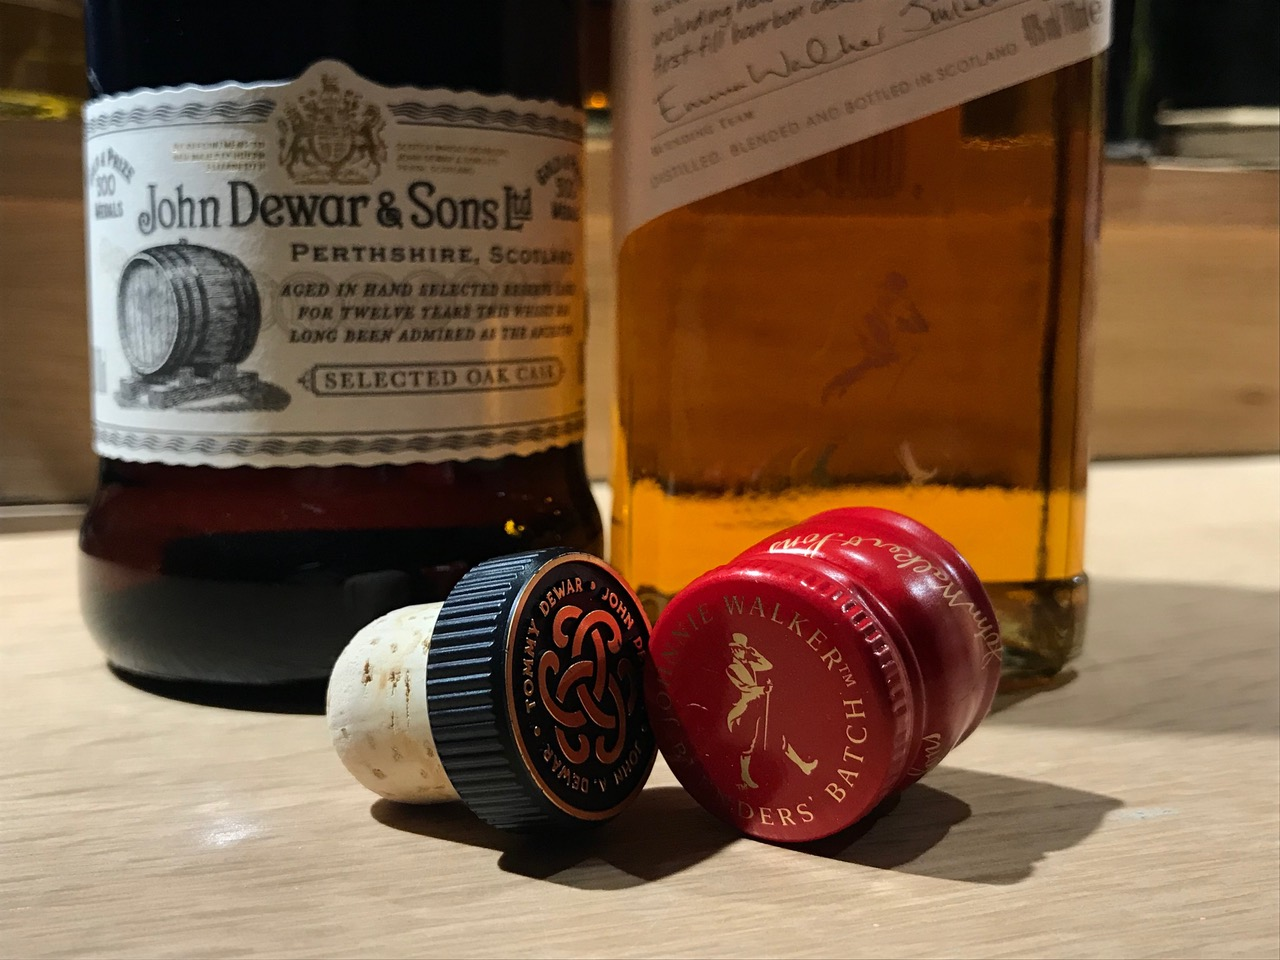 closures on whisky bottles